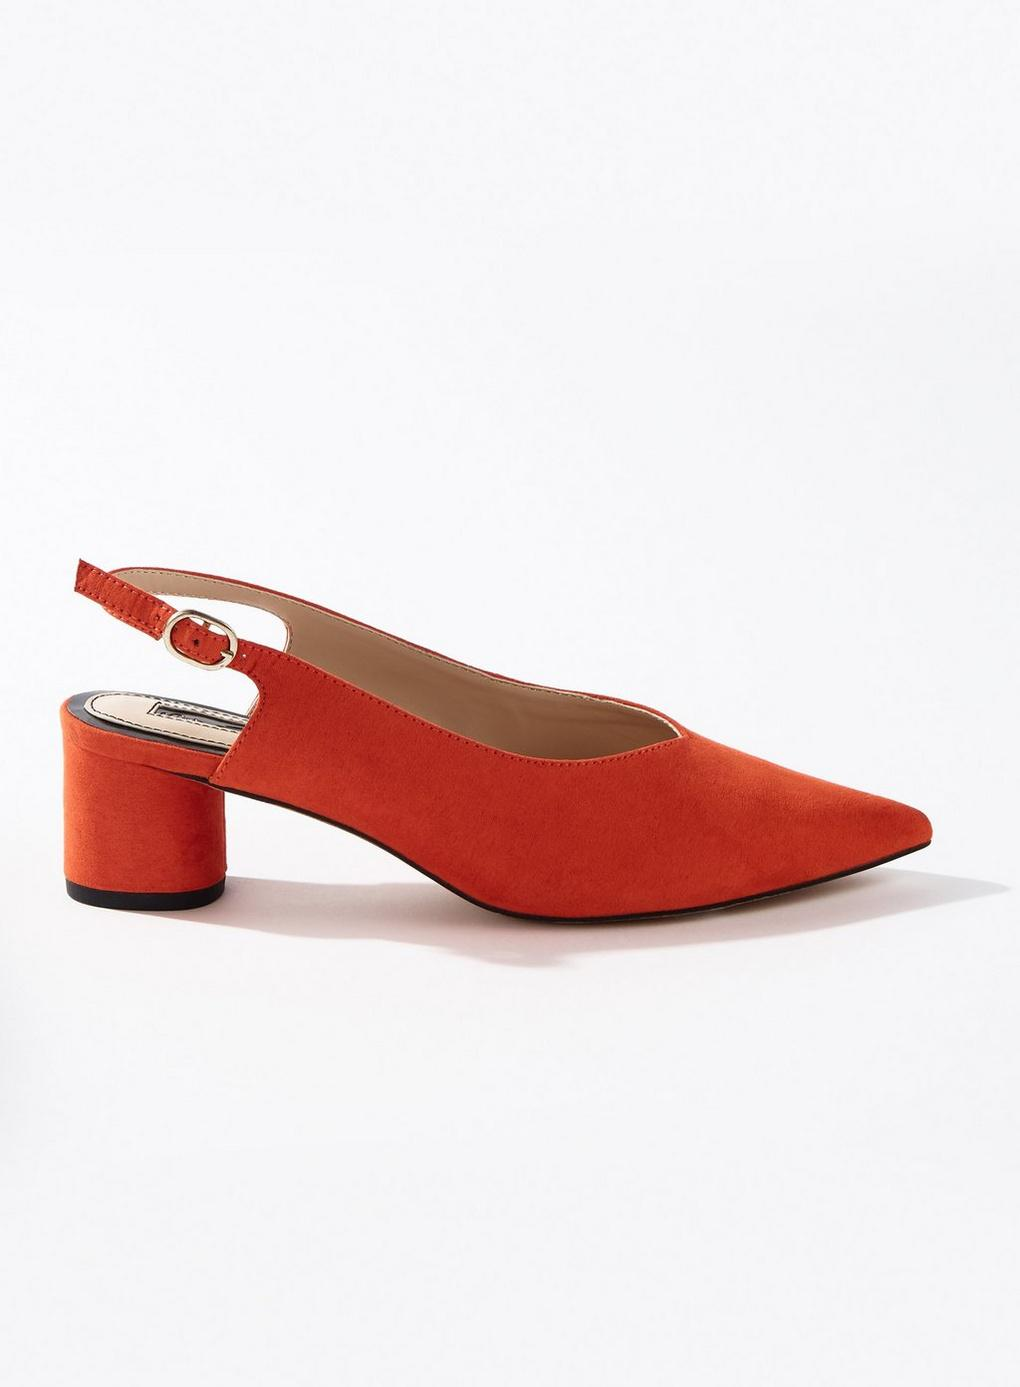 836c40043a68 Miss Selfridge Clara Red Round Heel Sling Back Shoes in Red - Lyst